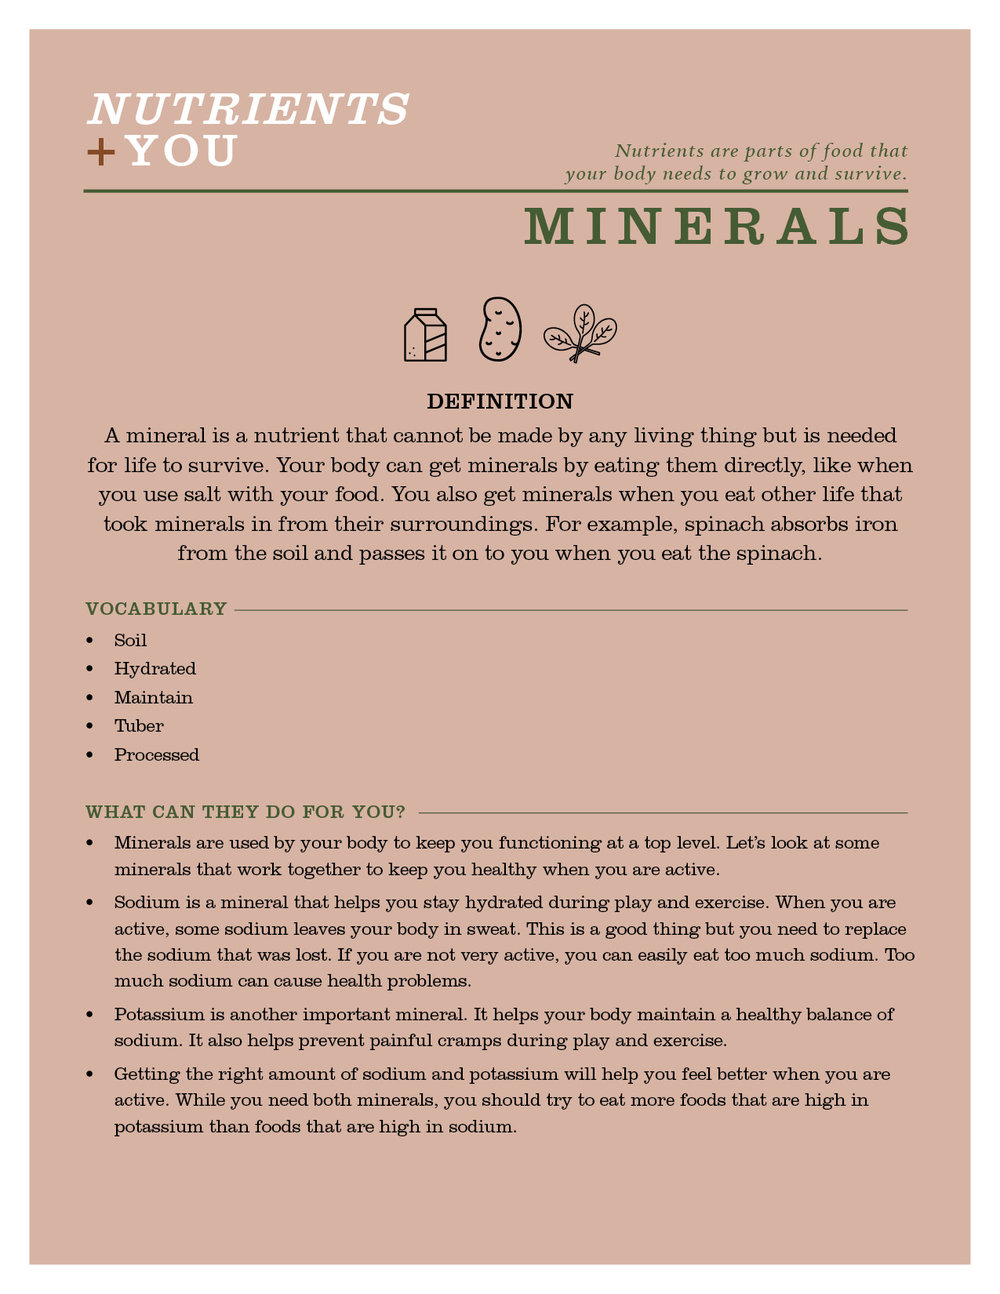 Nutrients+You_Minerals.jpg